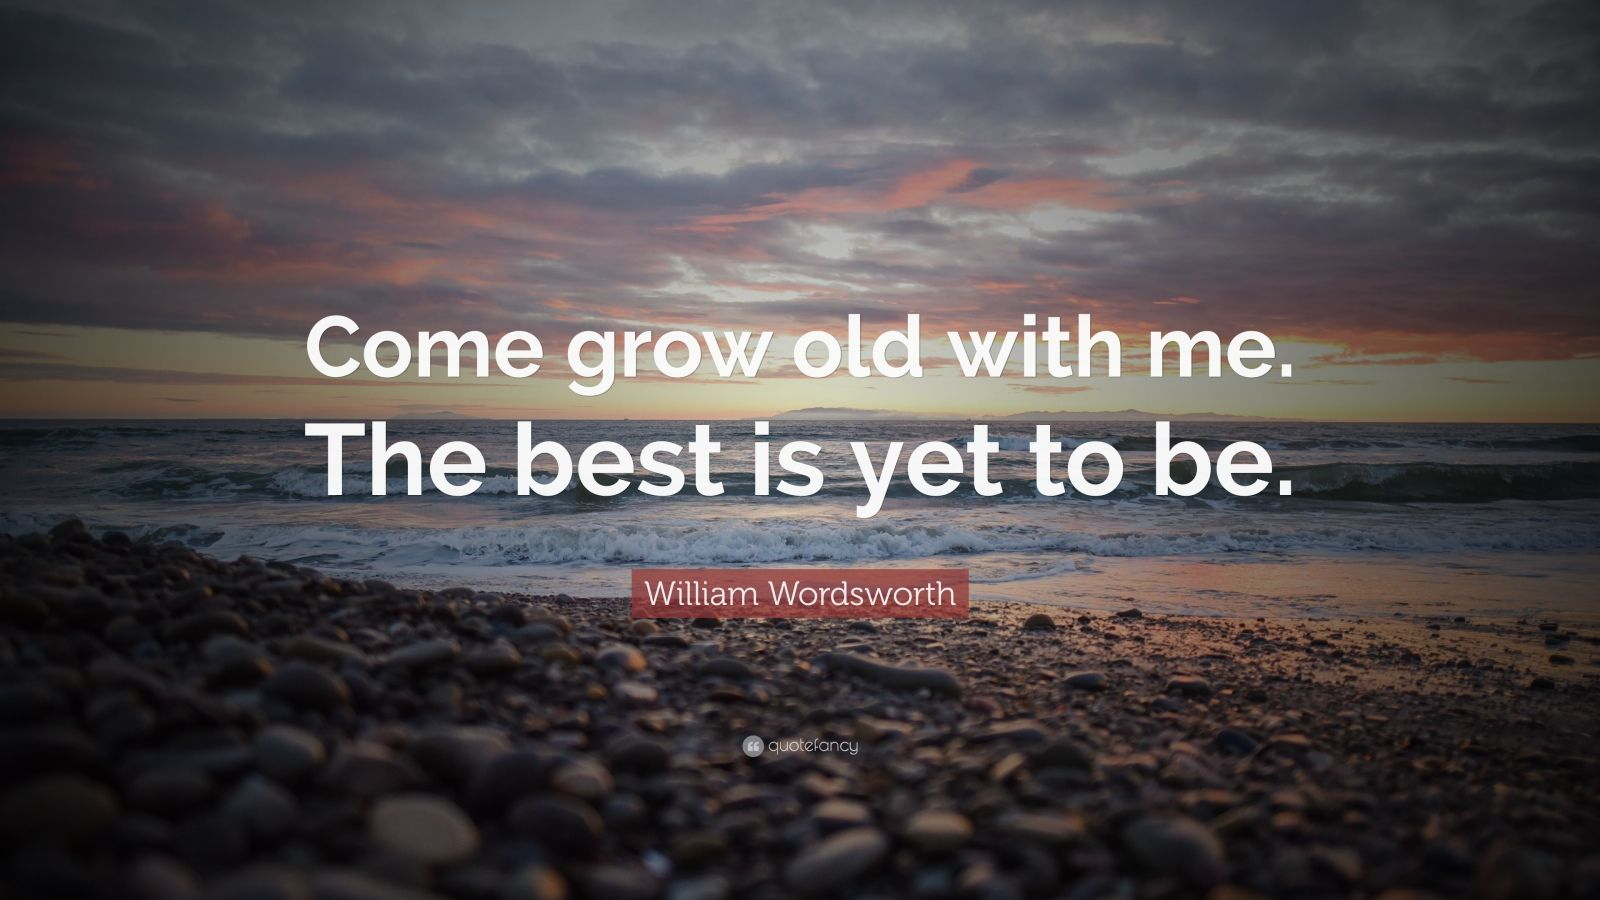 Inspiring Relationship Quotes Wallpaper William Wordsworth Quote Come Grow Old With Me The Best